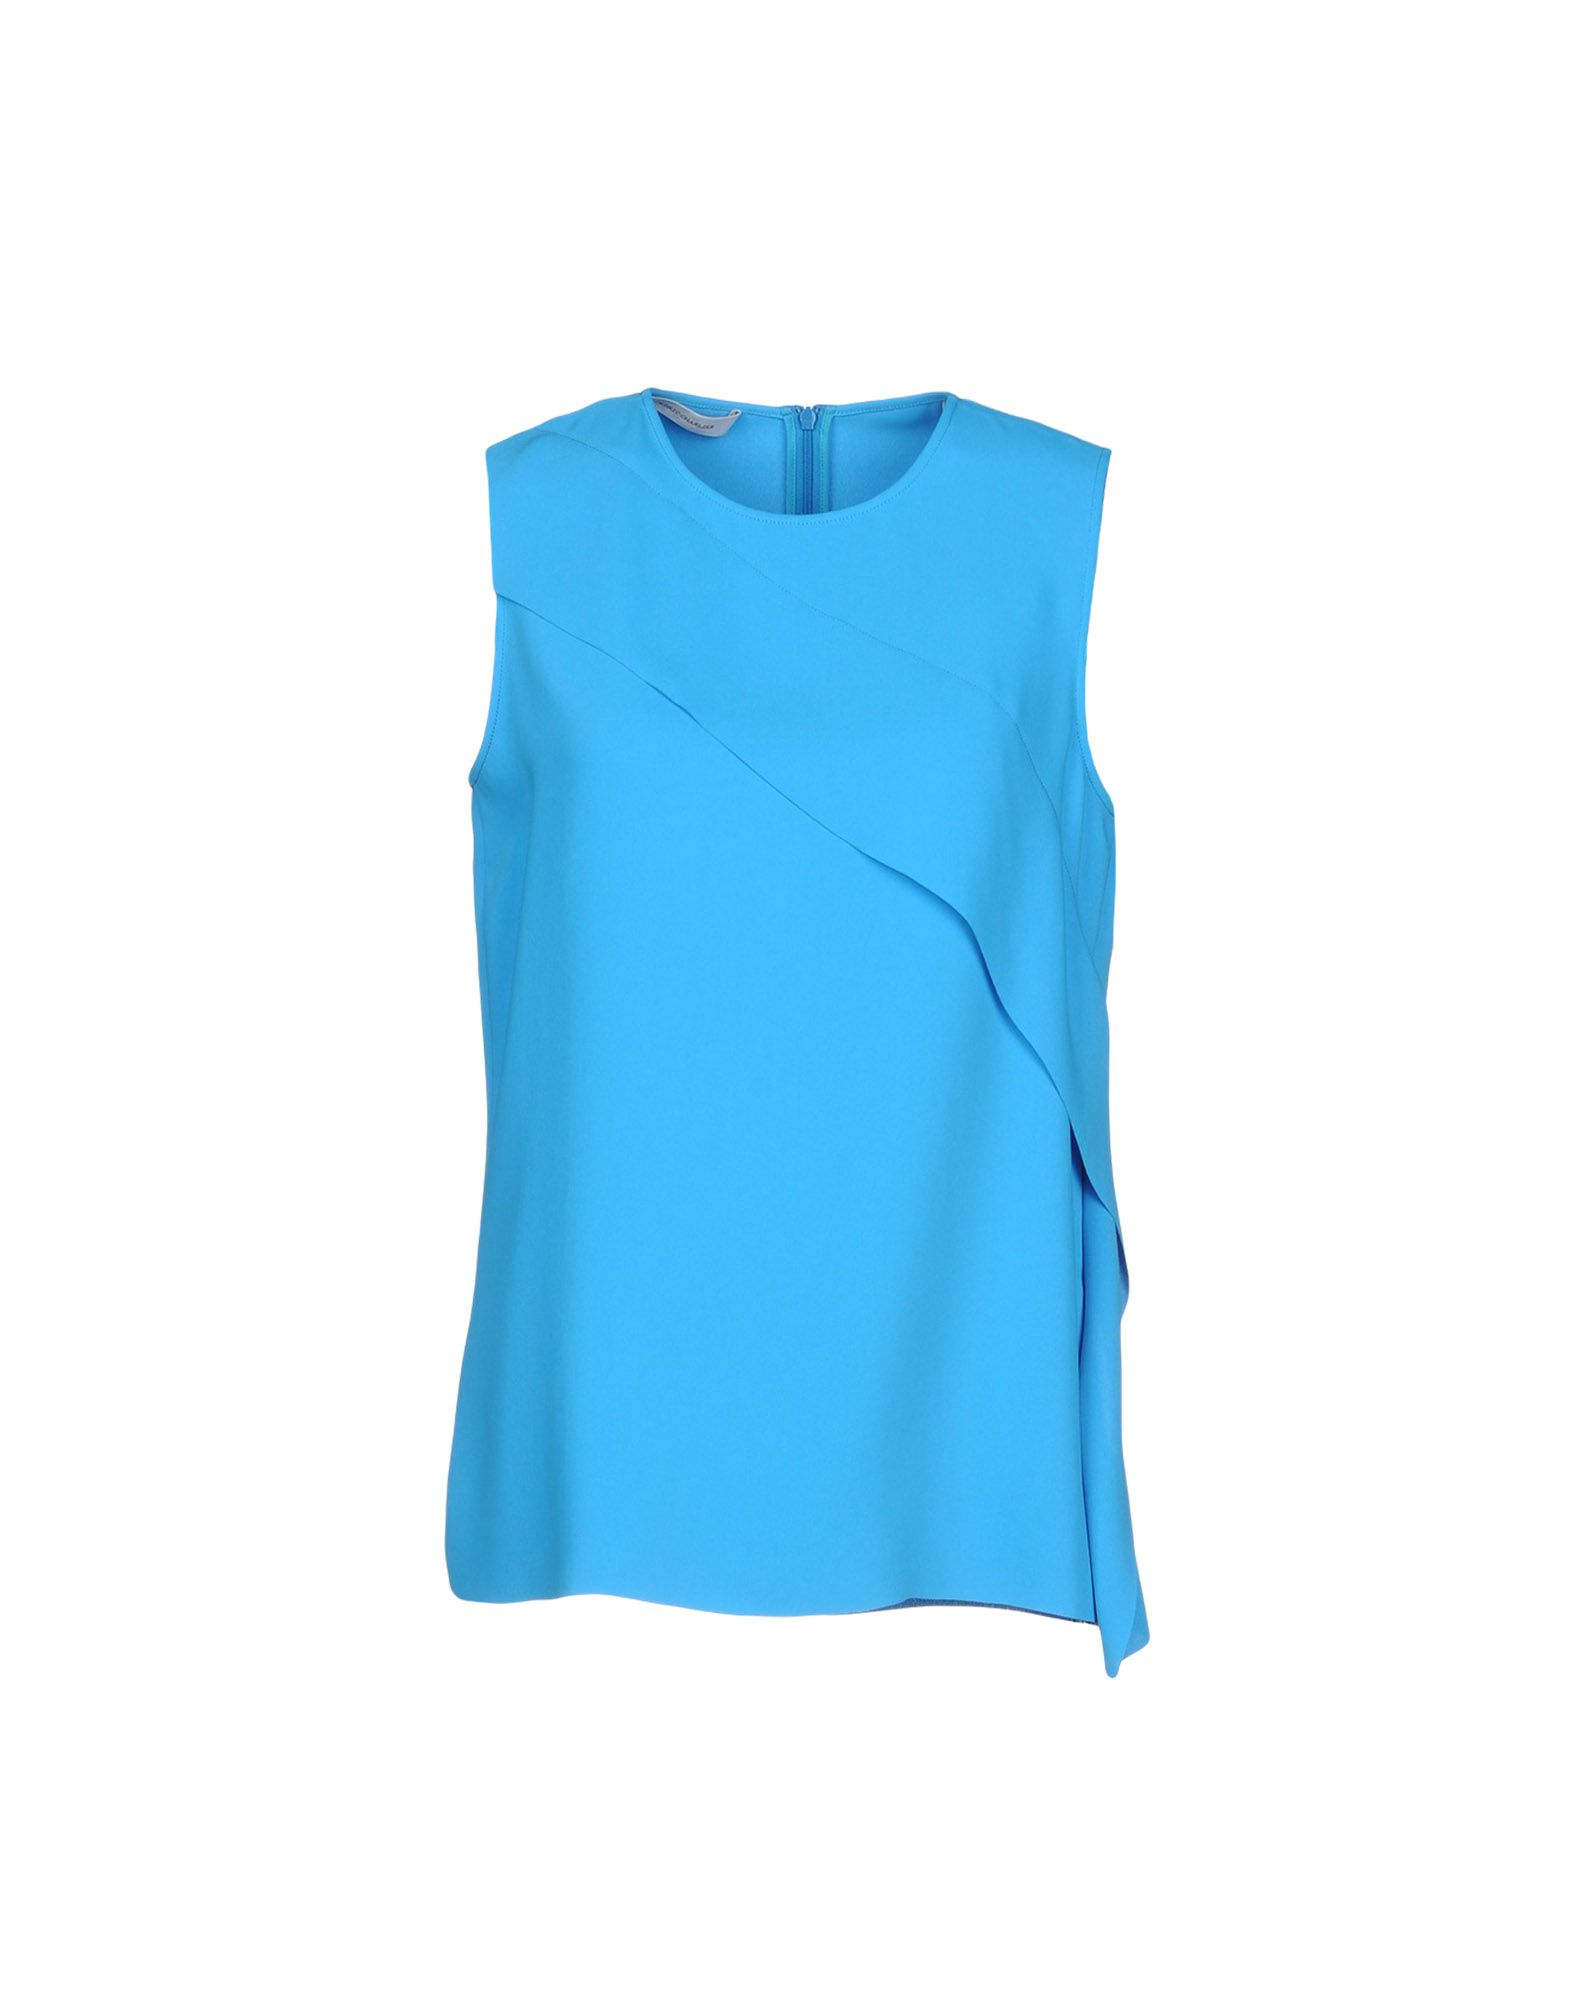 Cedric Charlier Top   T Shirts And Tops D by Cedric Charlier